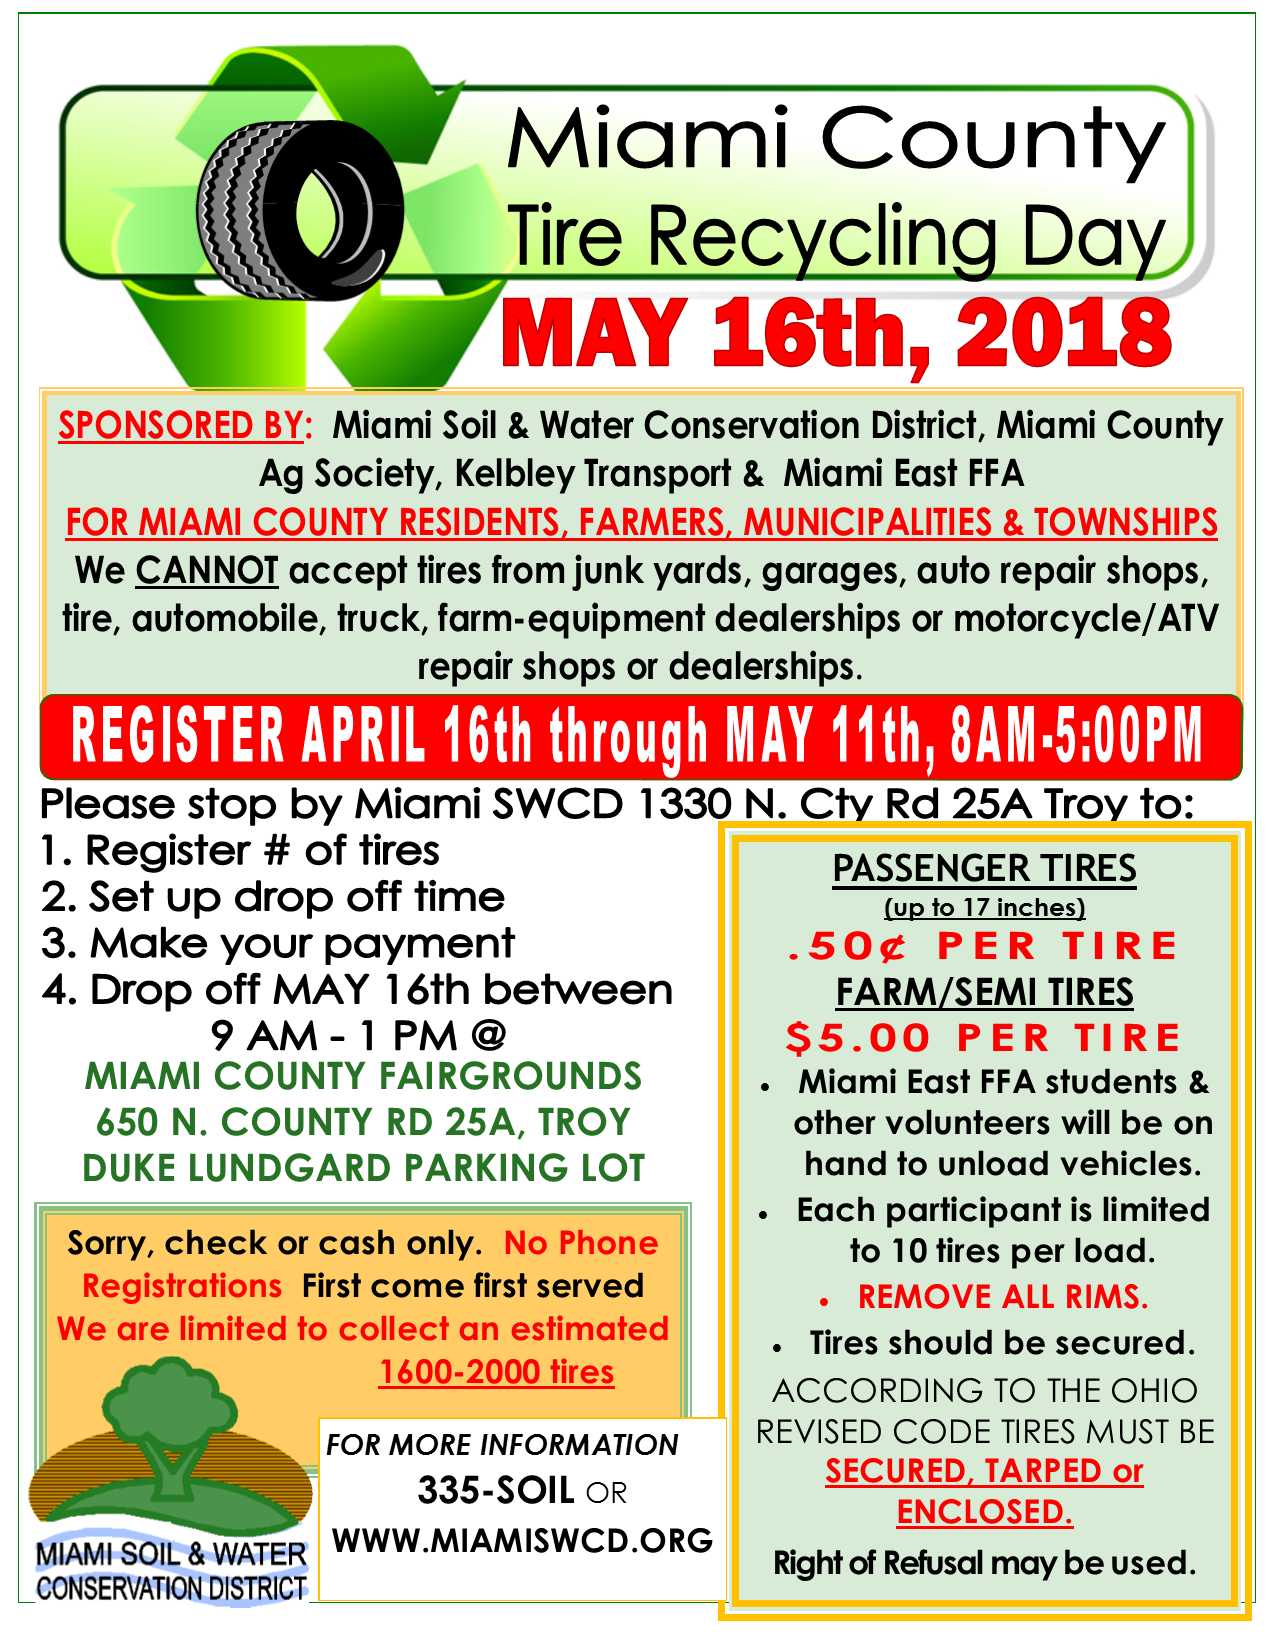 Tire recycling program for Miami County residents | Morning Ag Clips